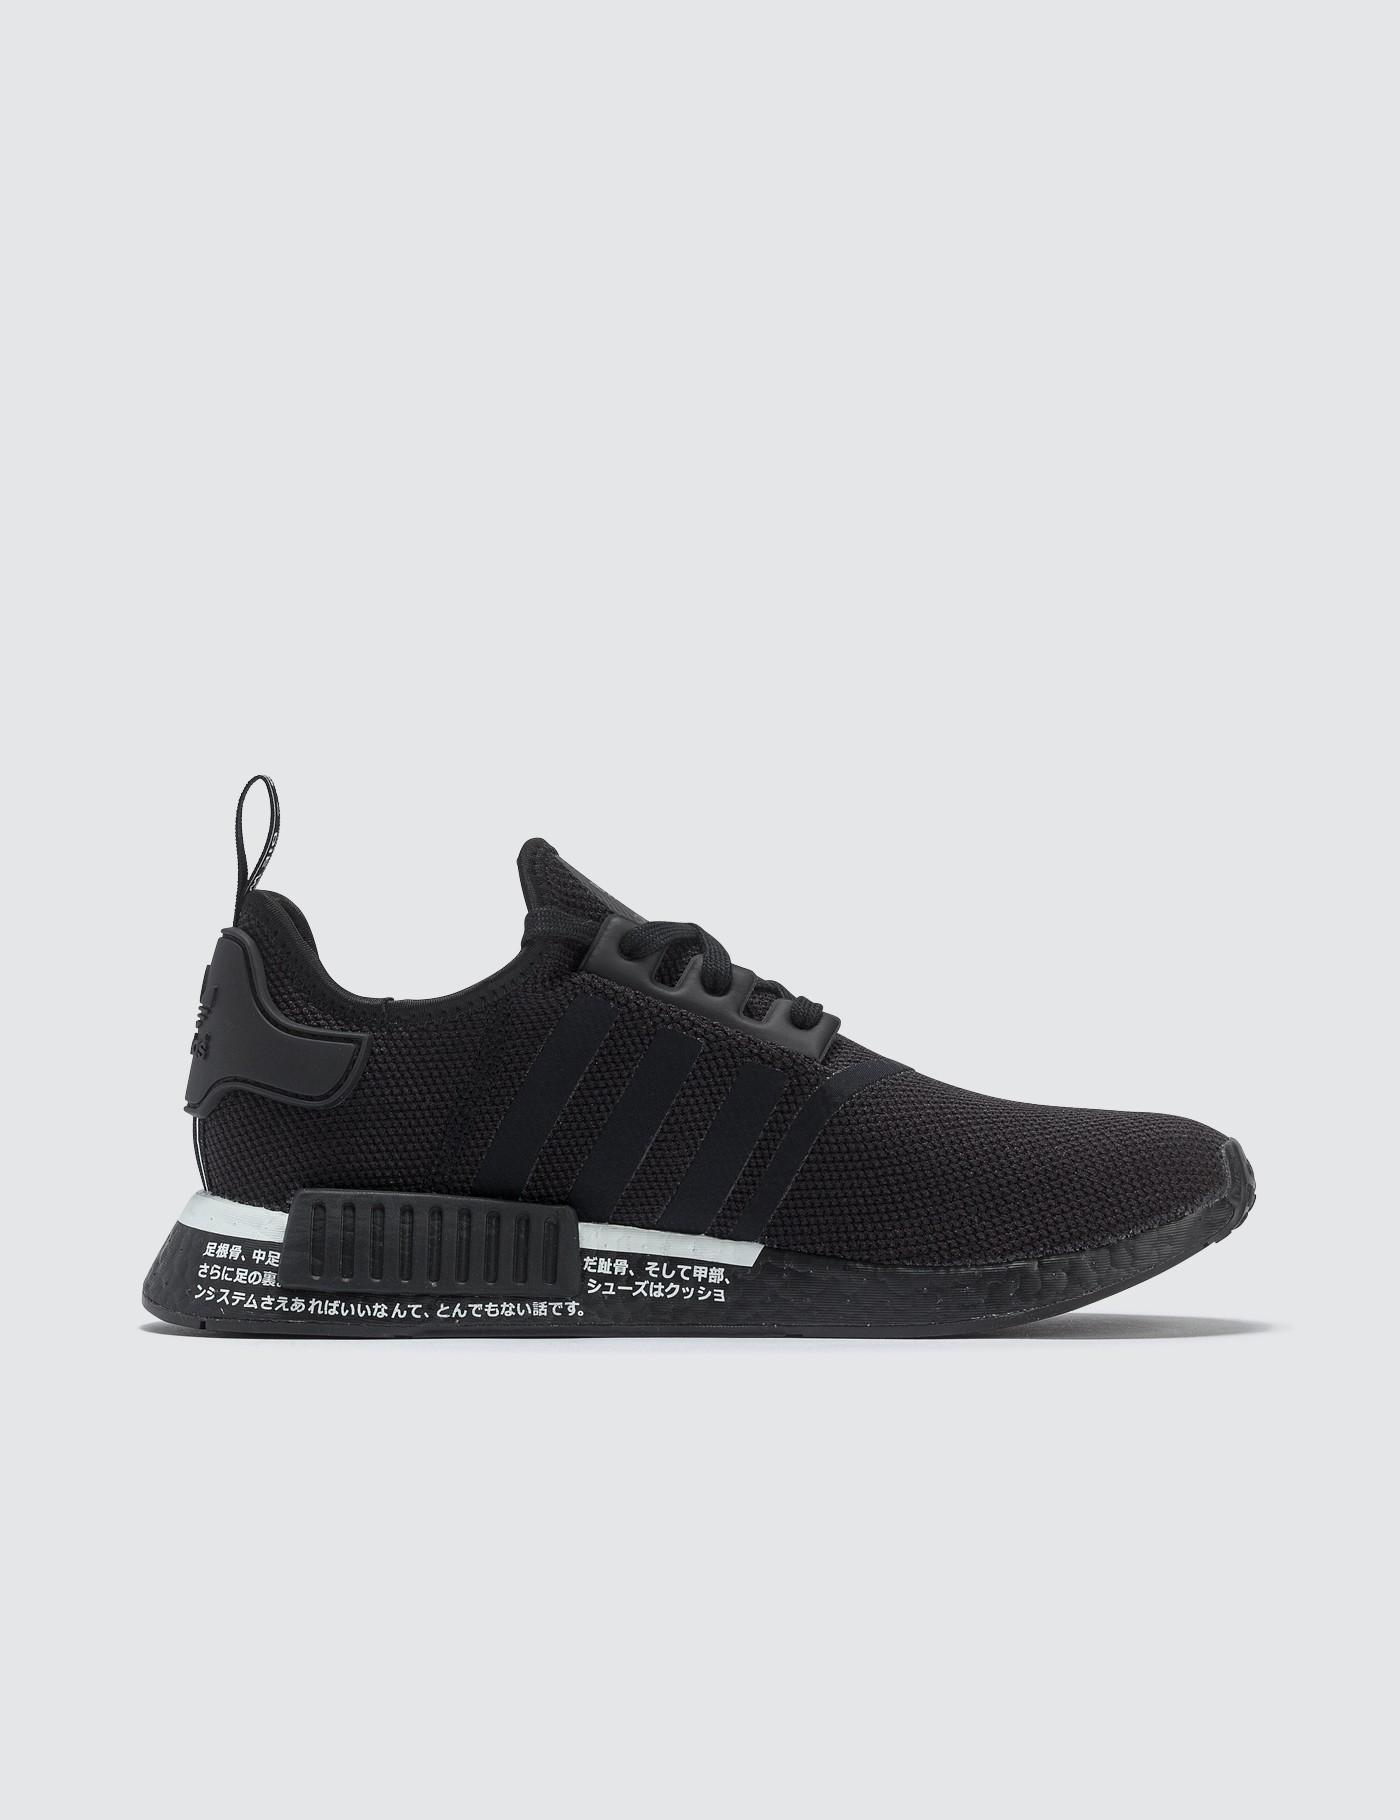 save off 1a74f bee15 Lyst - adidas Originals Nmd R1 in Black for Men